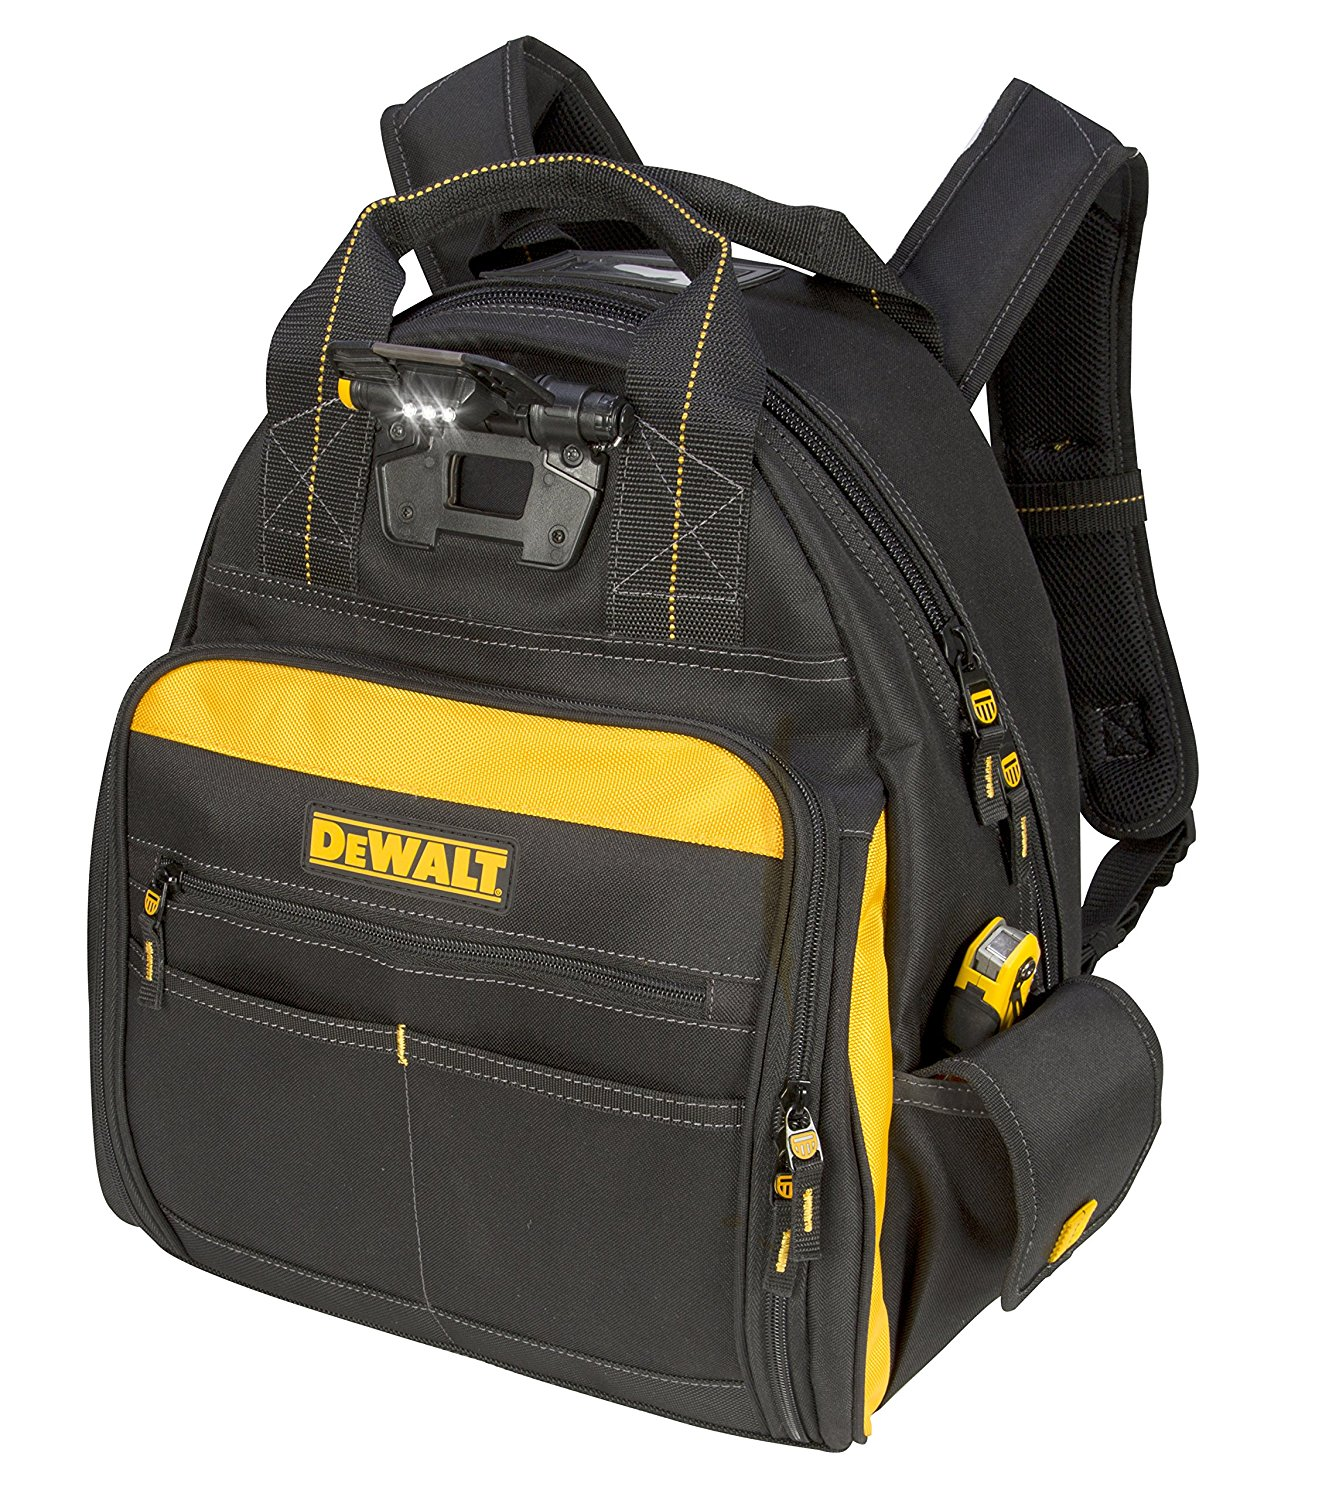 best tool backpack The Most Durable Tool Backpack: DEWALT DGL523 Lighted Tool Backpack Bag With 57-Pockets.